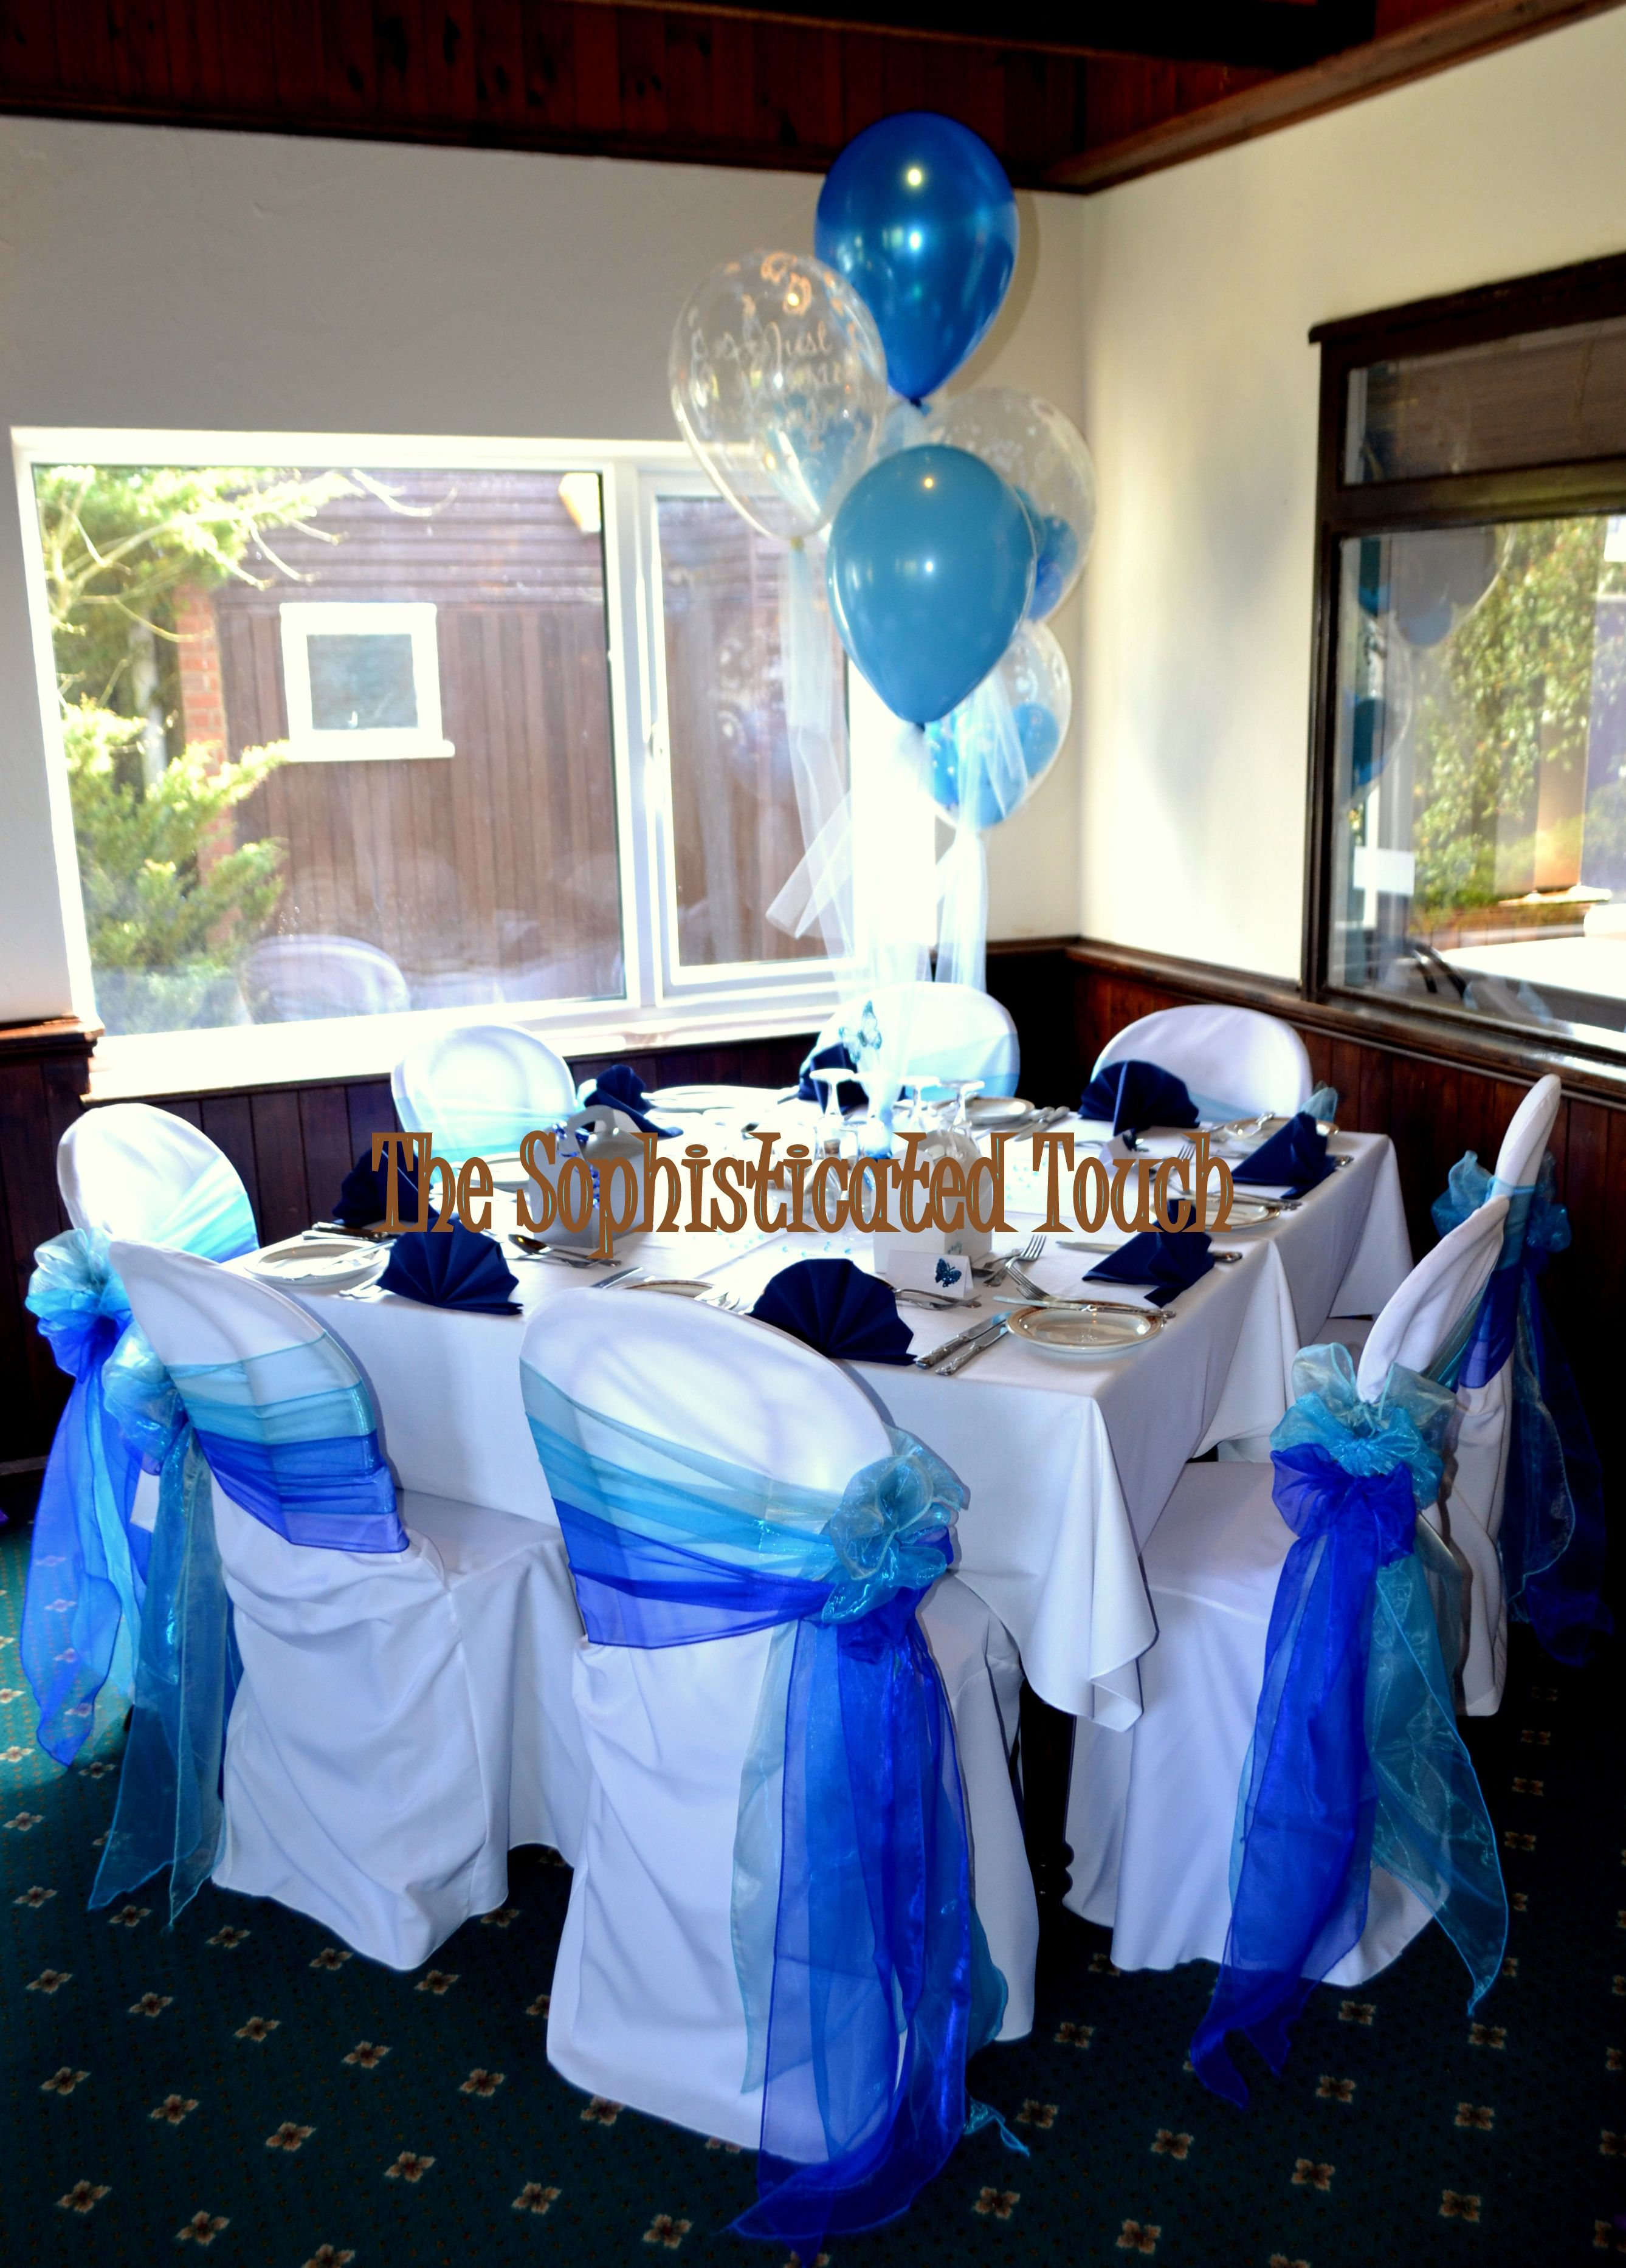 Blue Ombre Organza Bows on White Chair Covers The